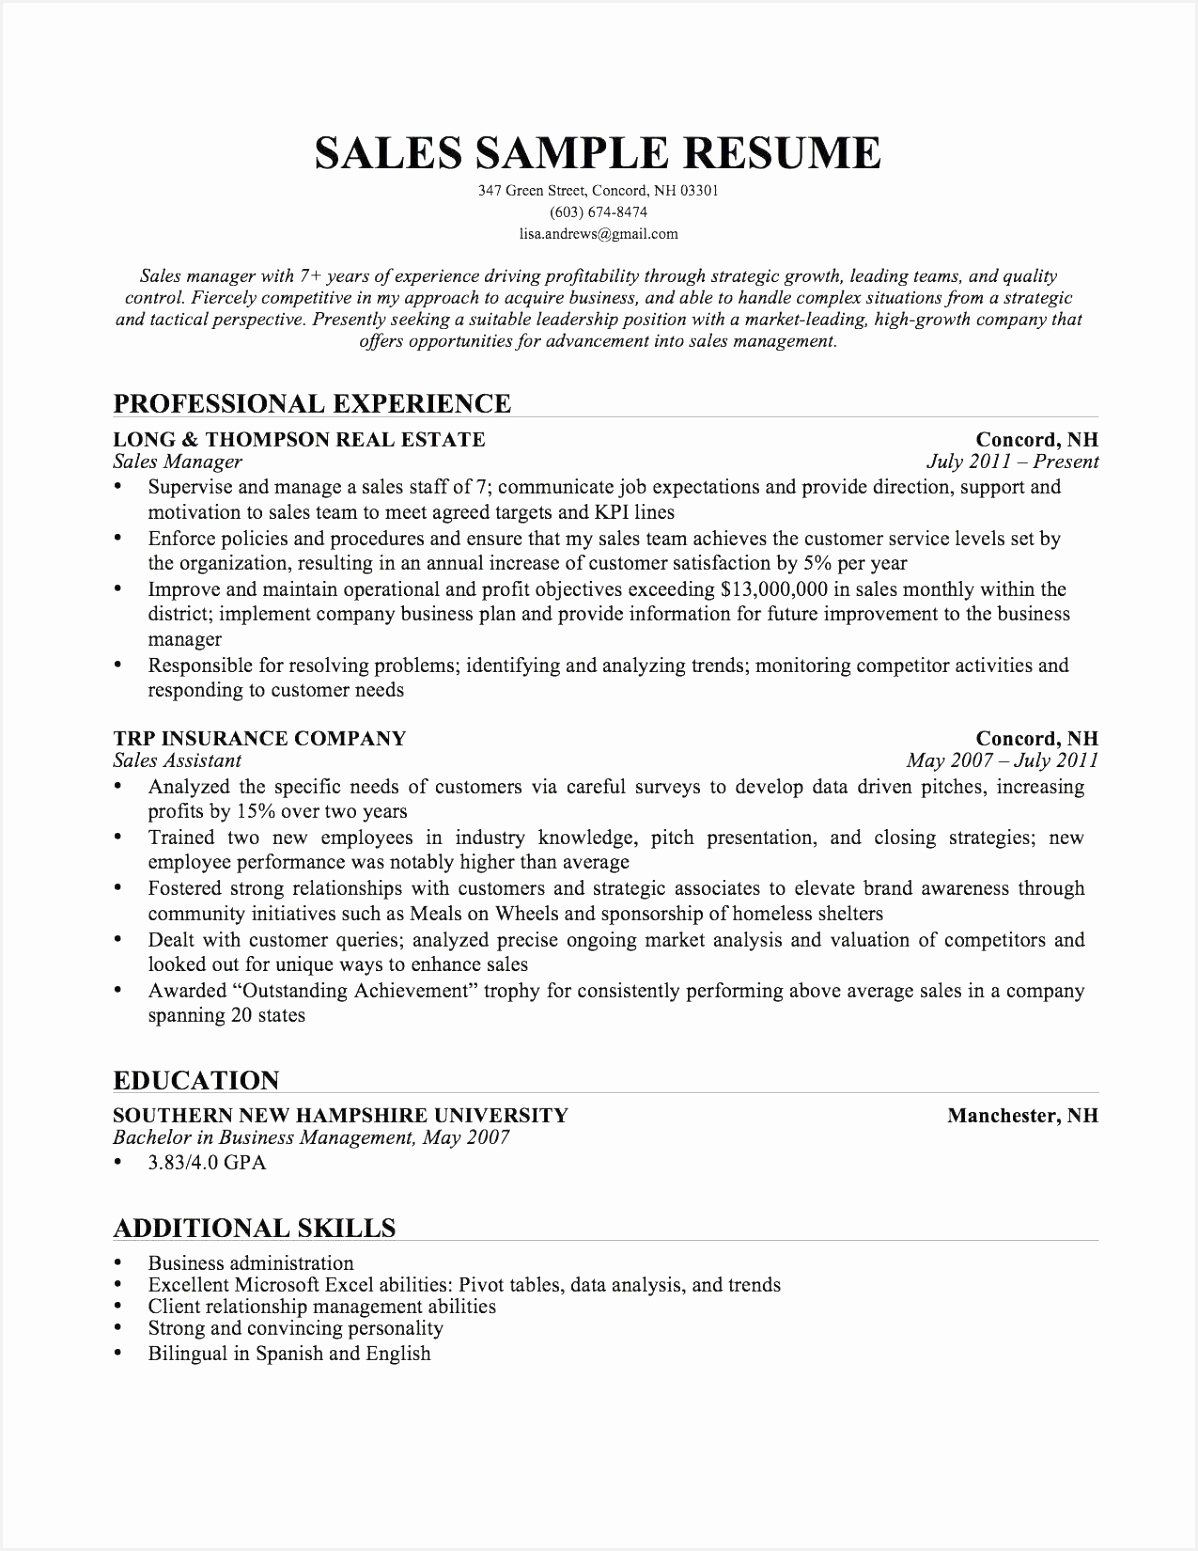 Sample Of Student Resume U0kge Fresh social Work Resume American Resume Sample New Student Resume 0d Free15511198